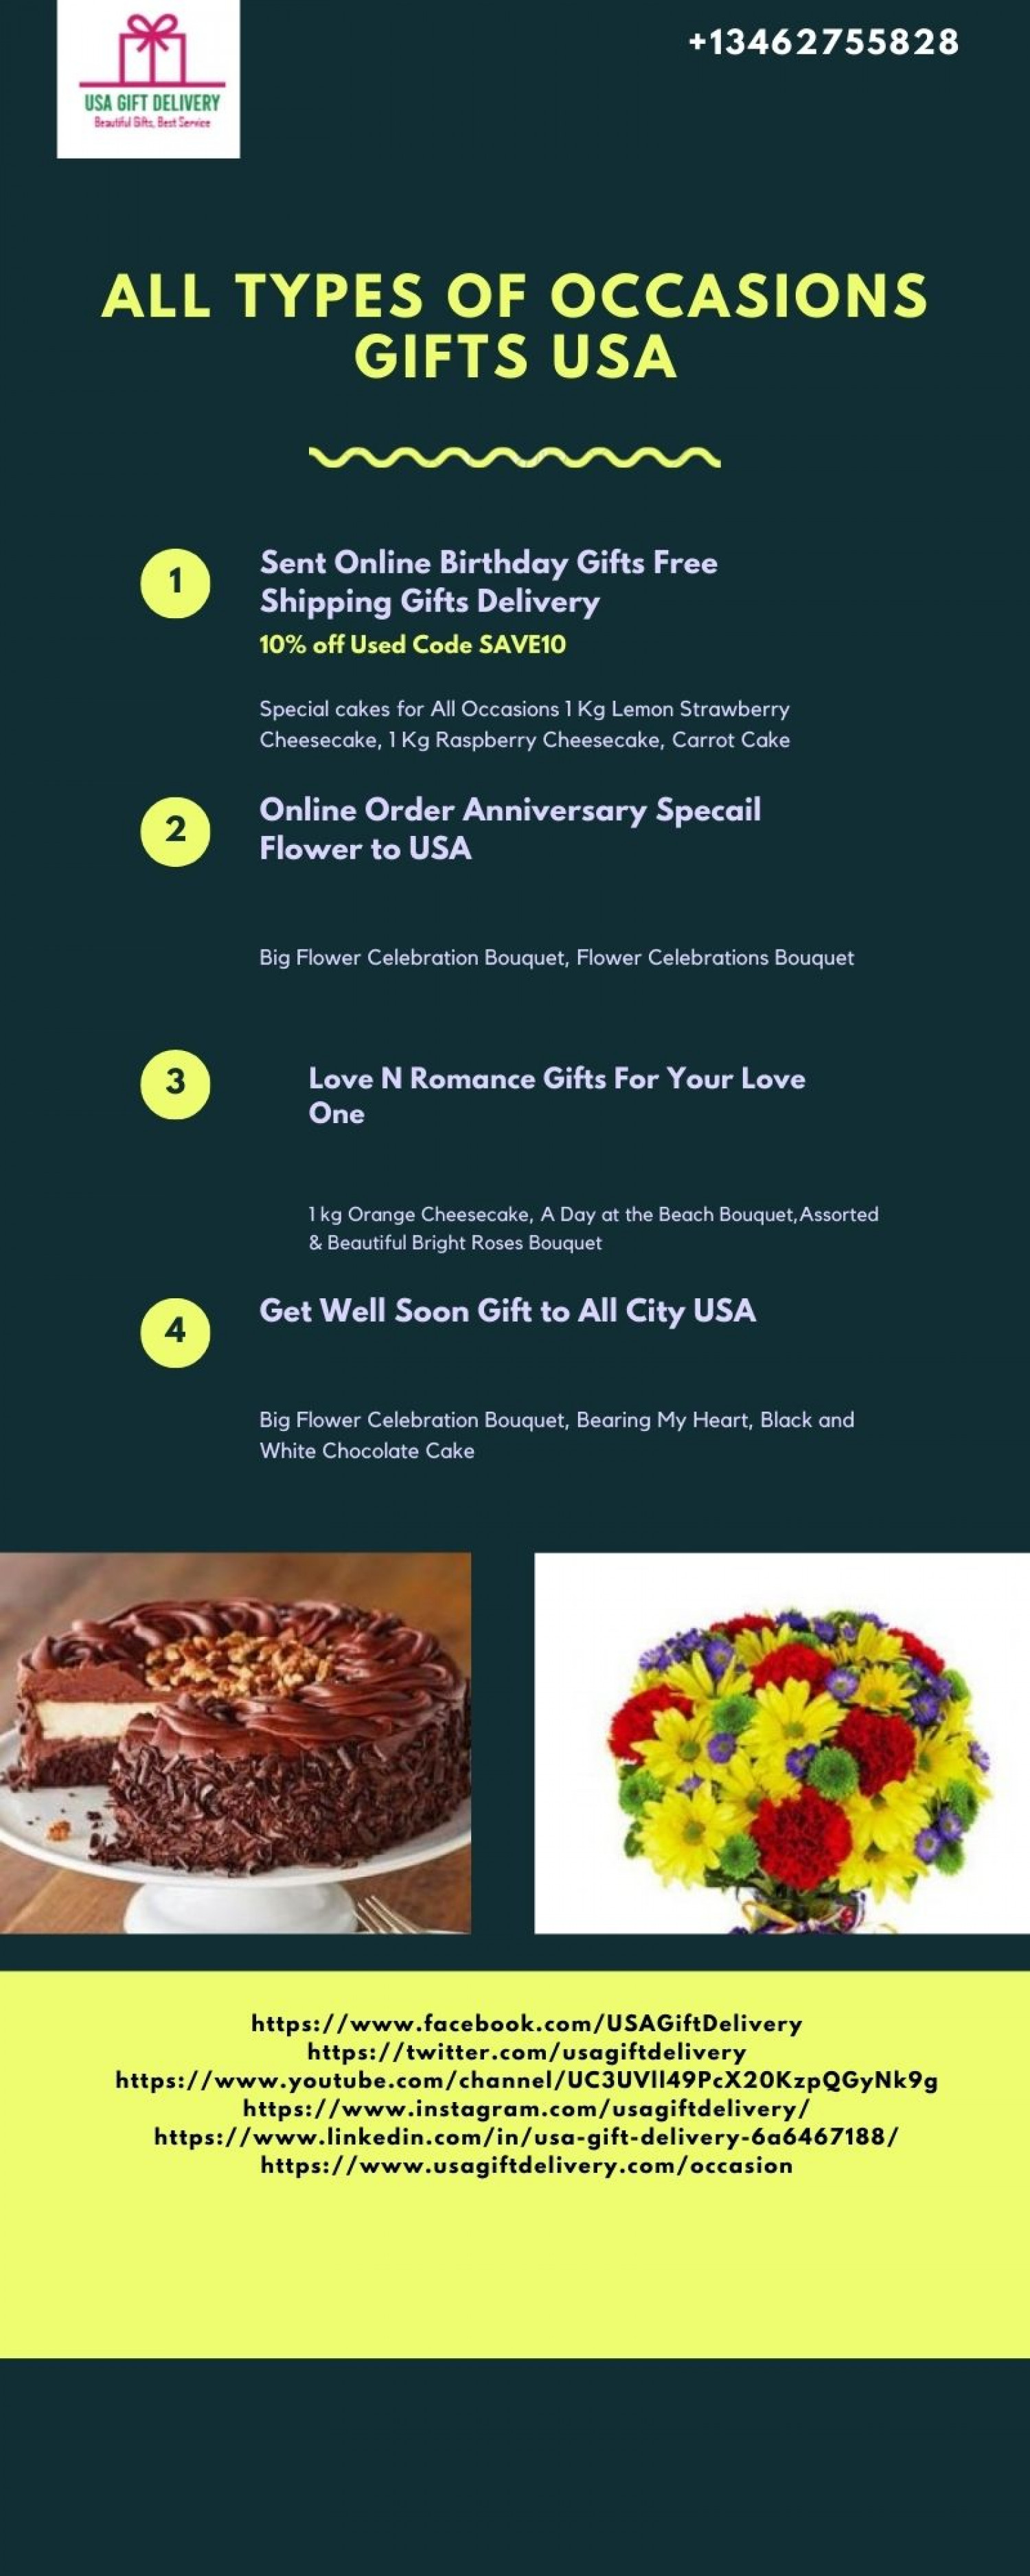 All Types of Occasions Gifts USA Infographic